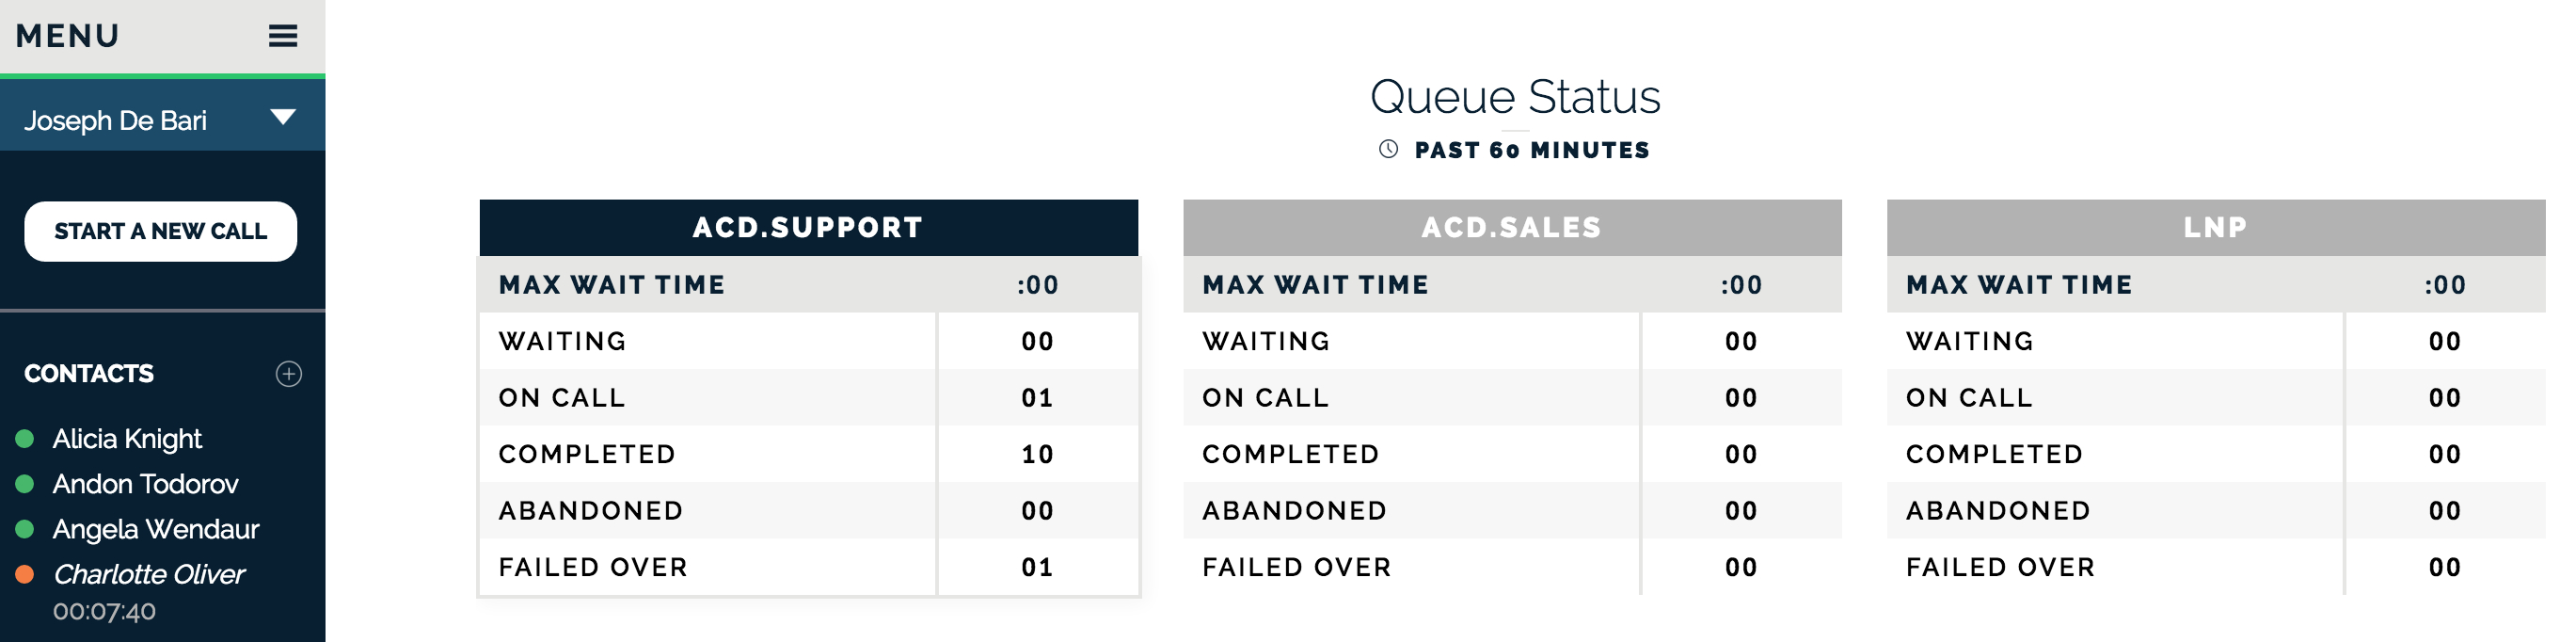 Real-time ACD queue status information